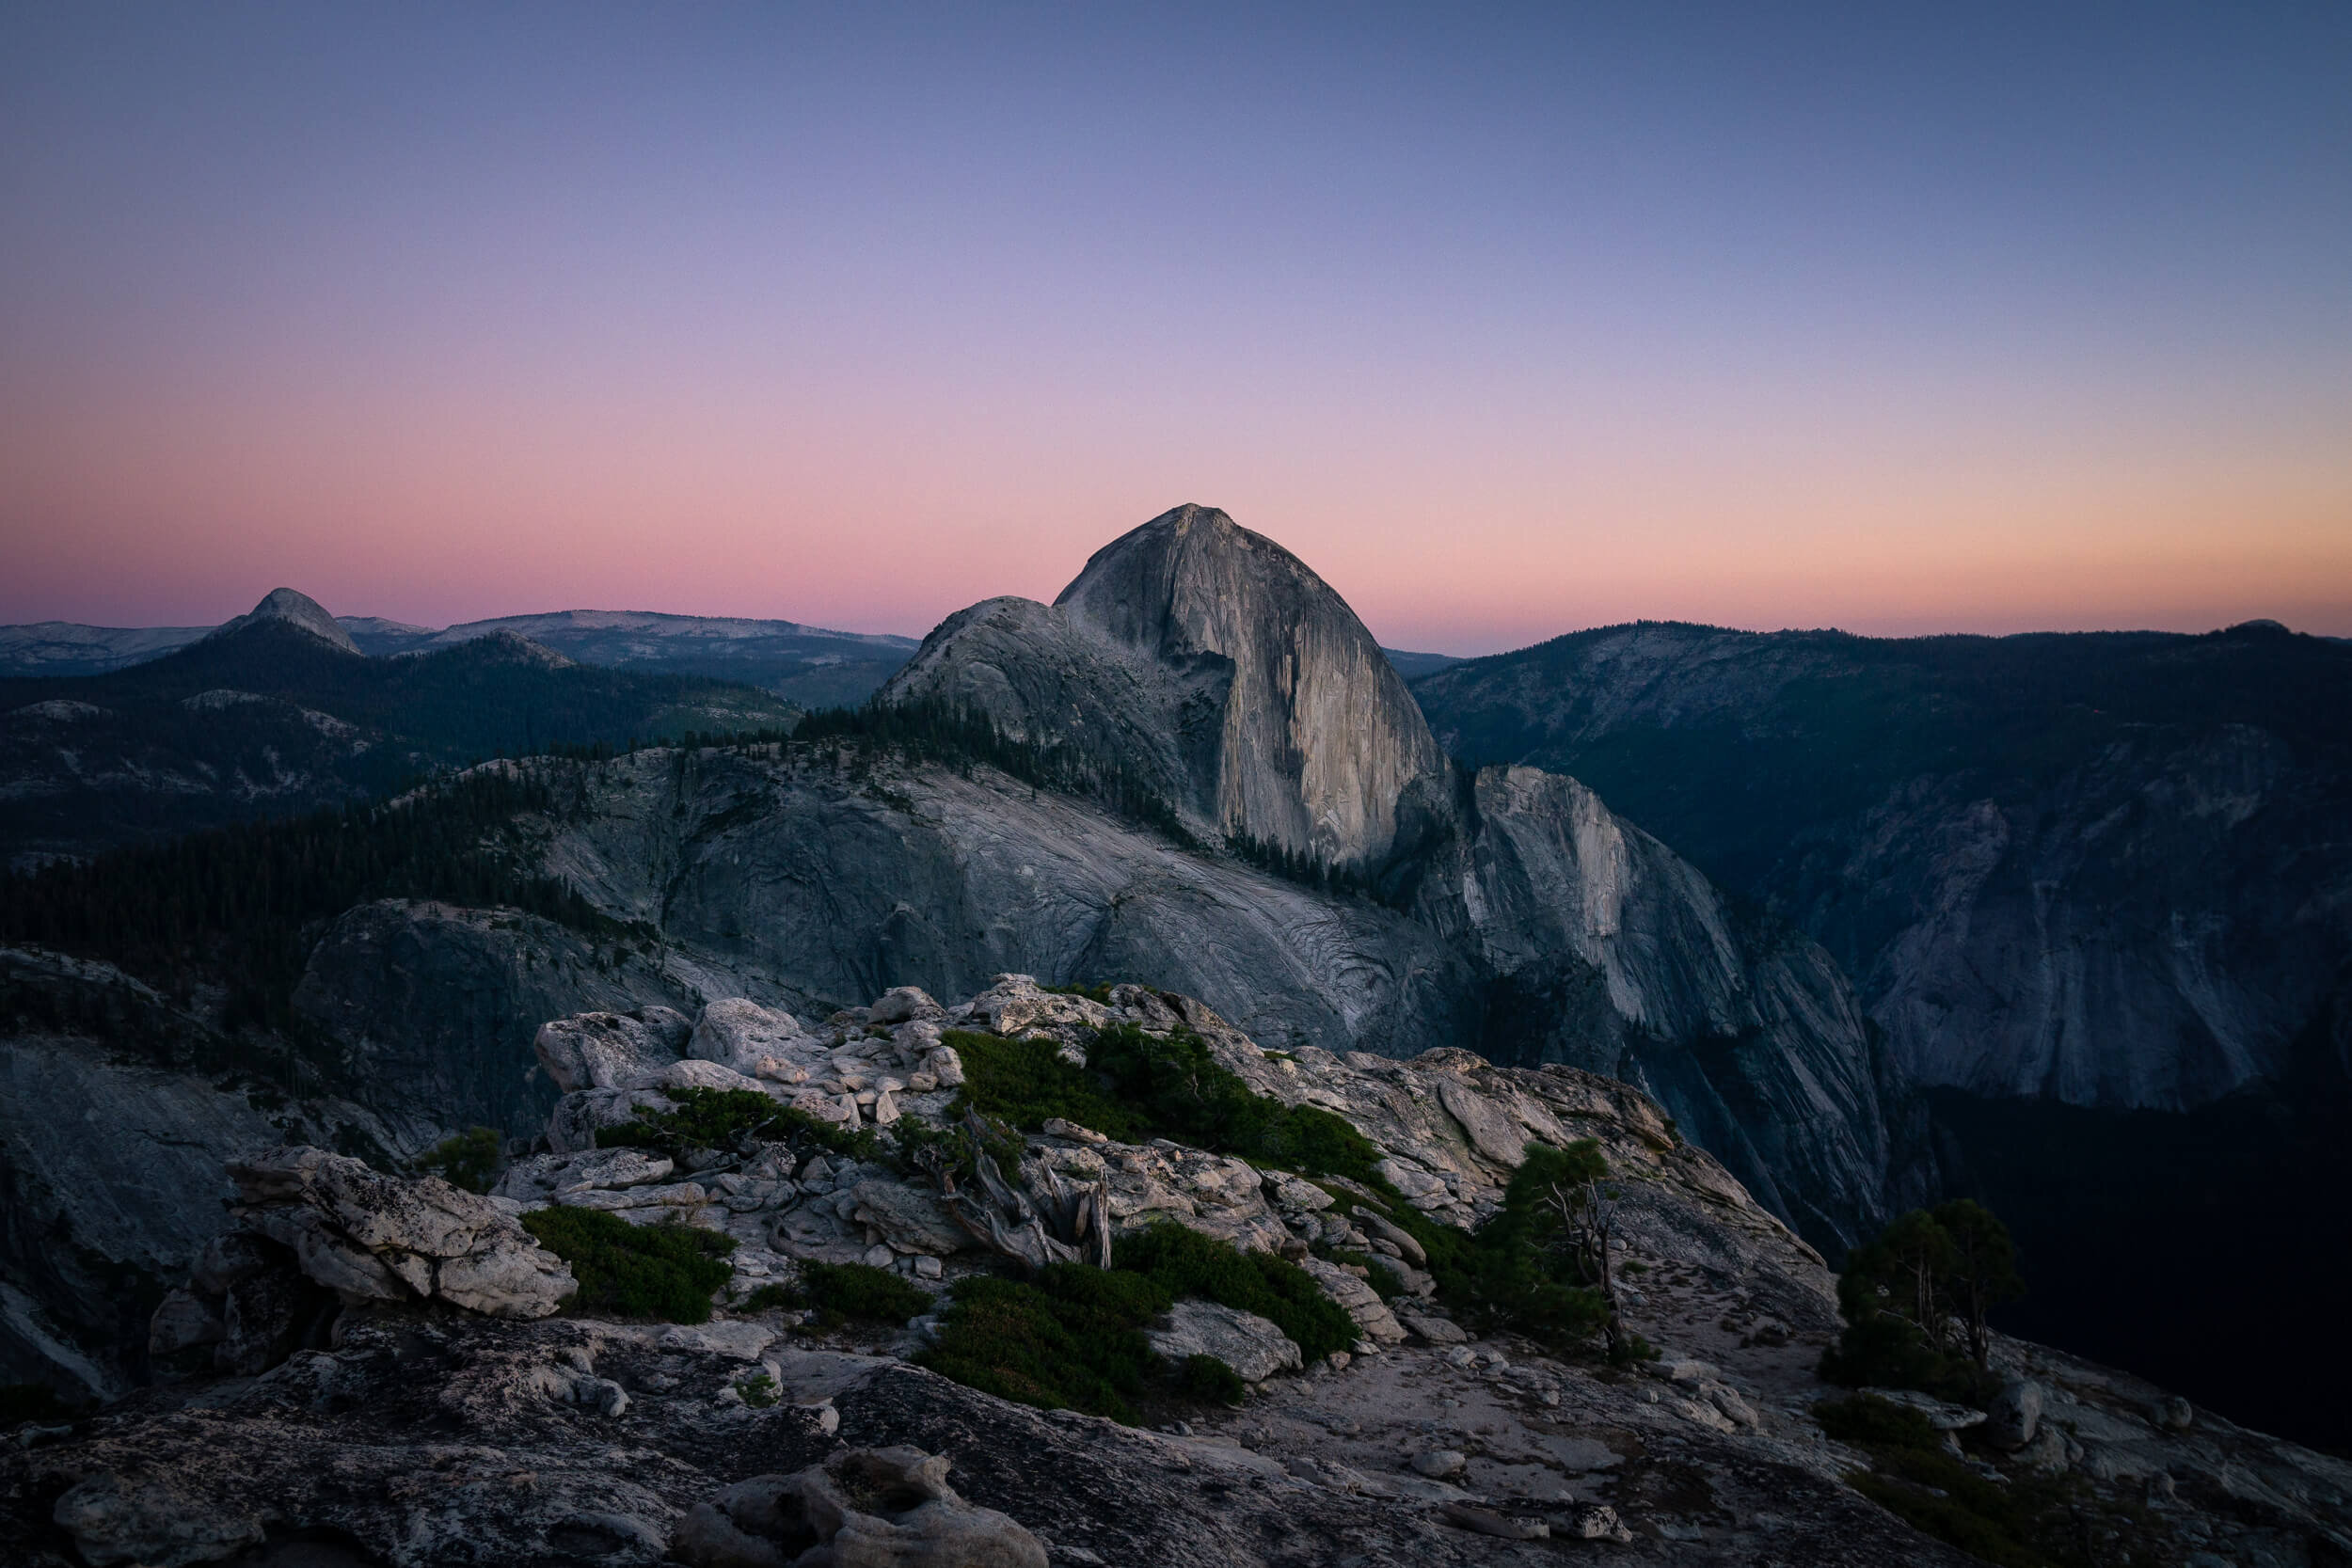 Sunset views of Half Dome from Mount Watkins.